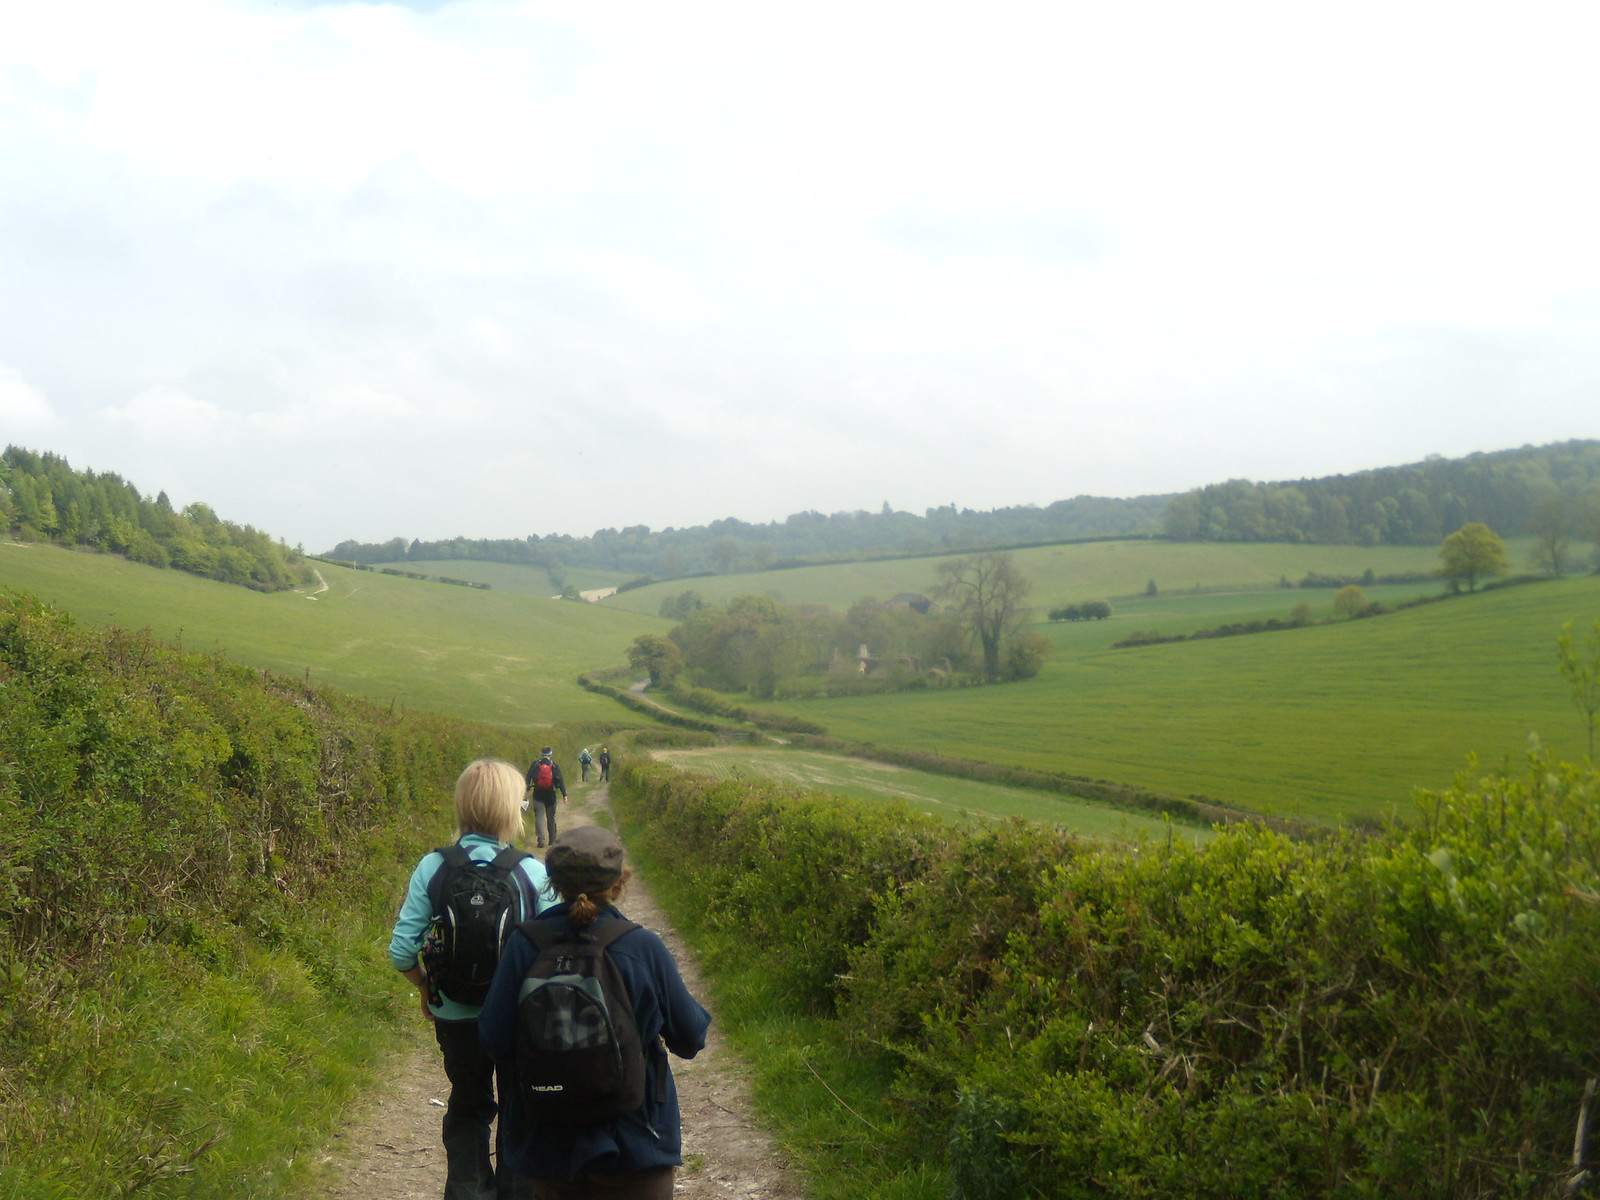 Down to St James's Henley Circular via Stonor